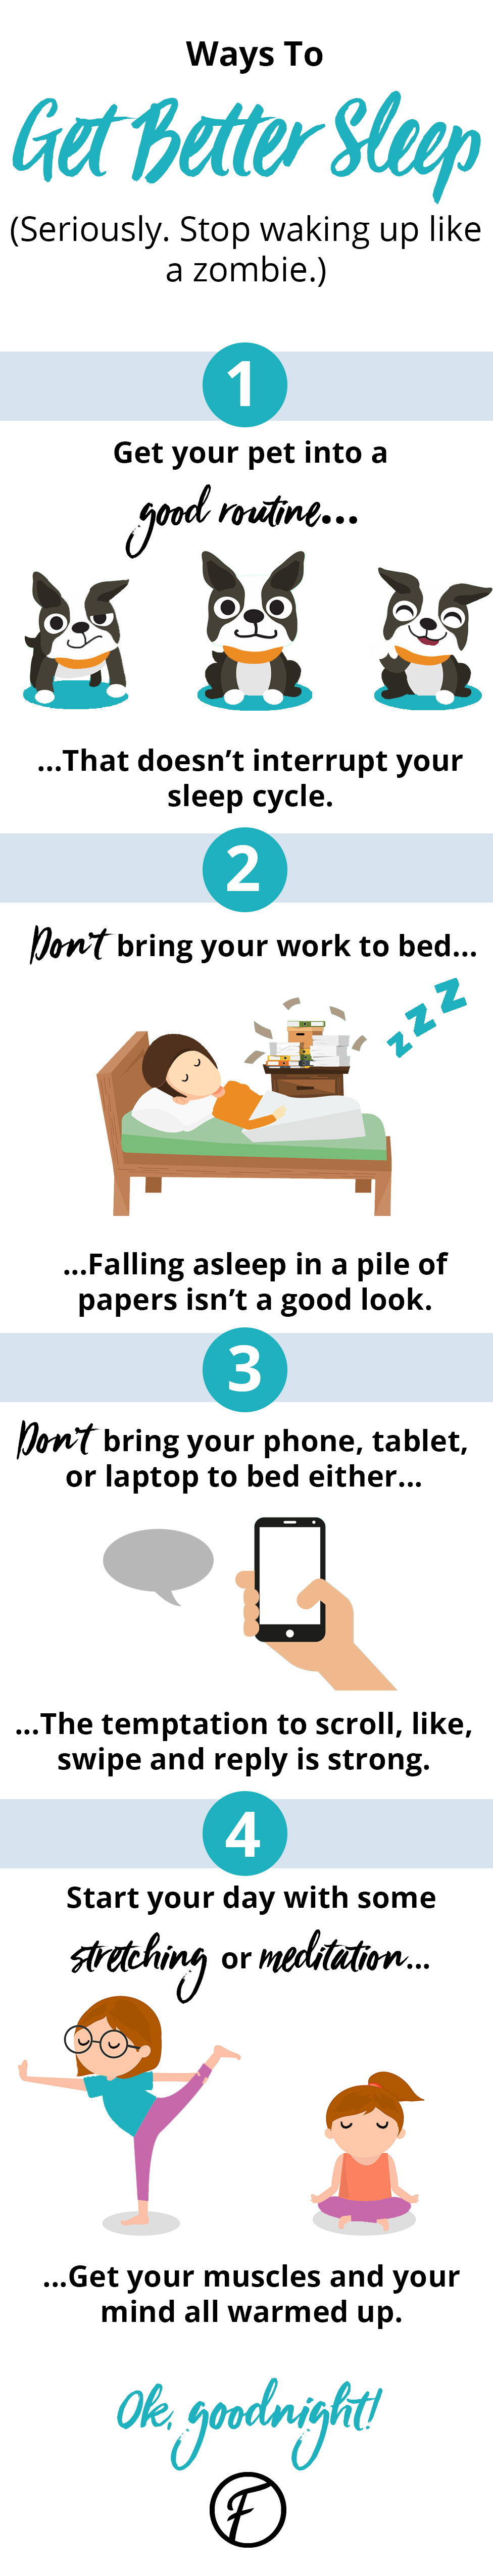 Infographic_Get_Better_Sleep